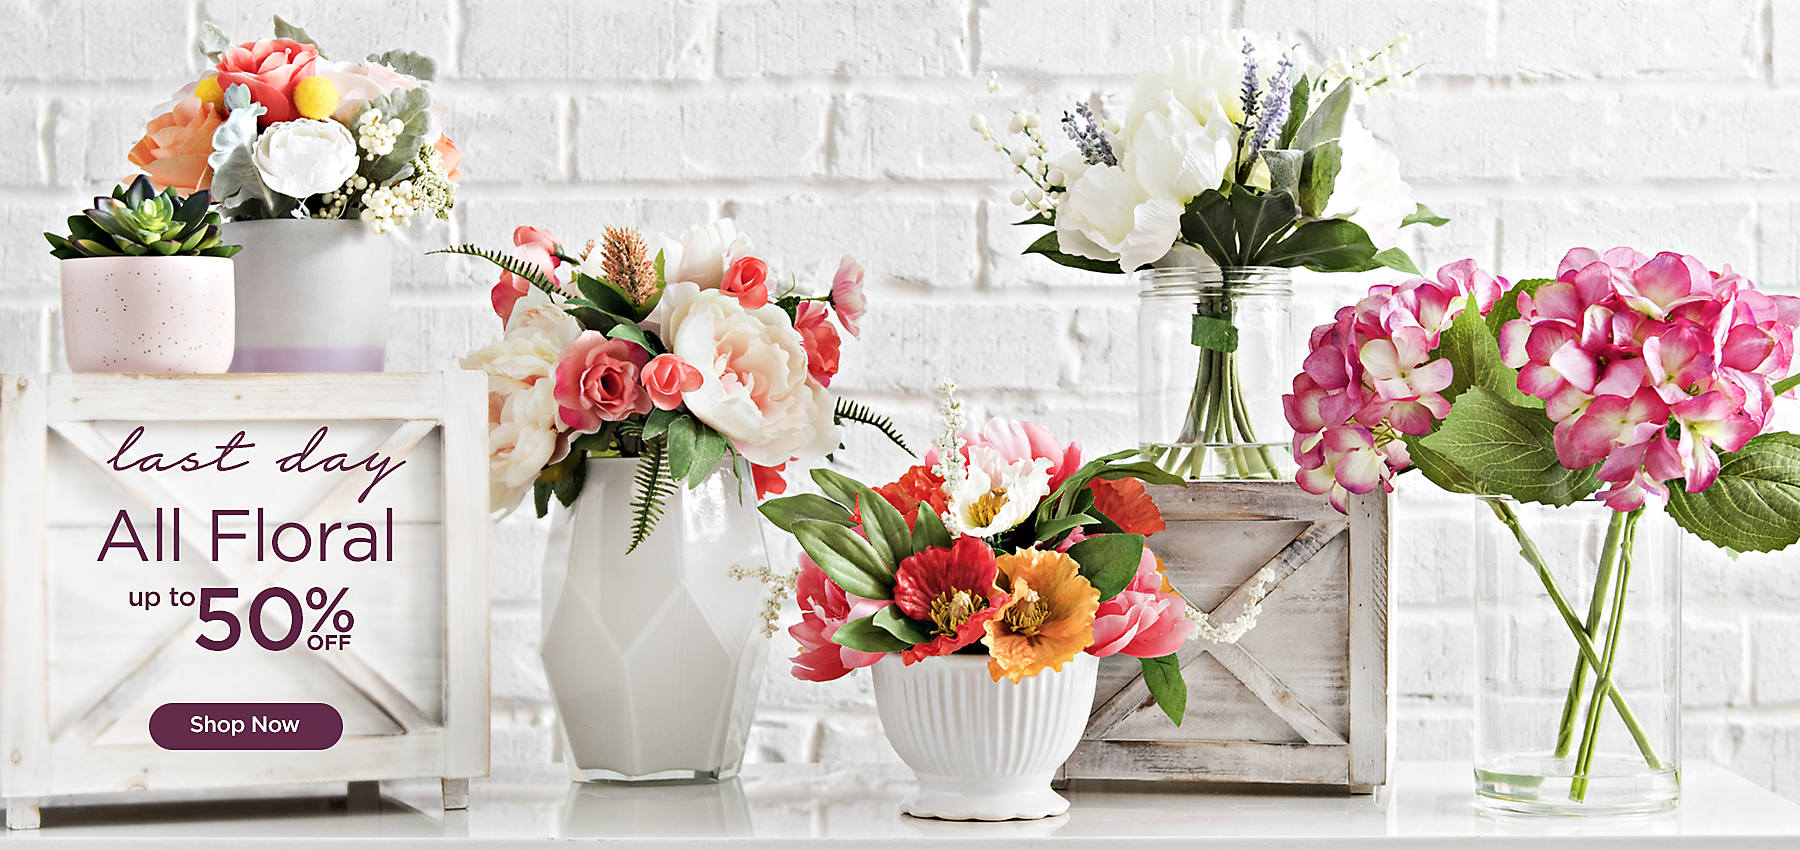 Last Day - Up to 50% off All Floral - Shop Now